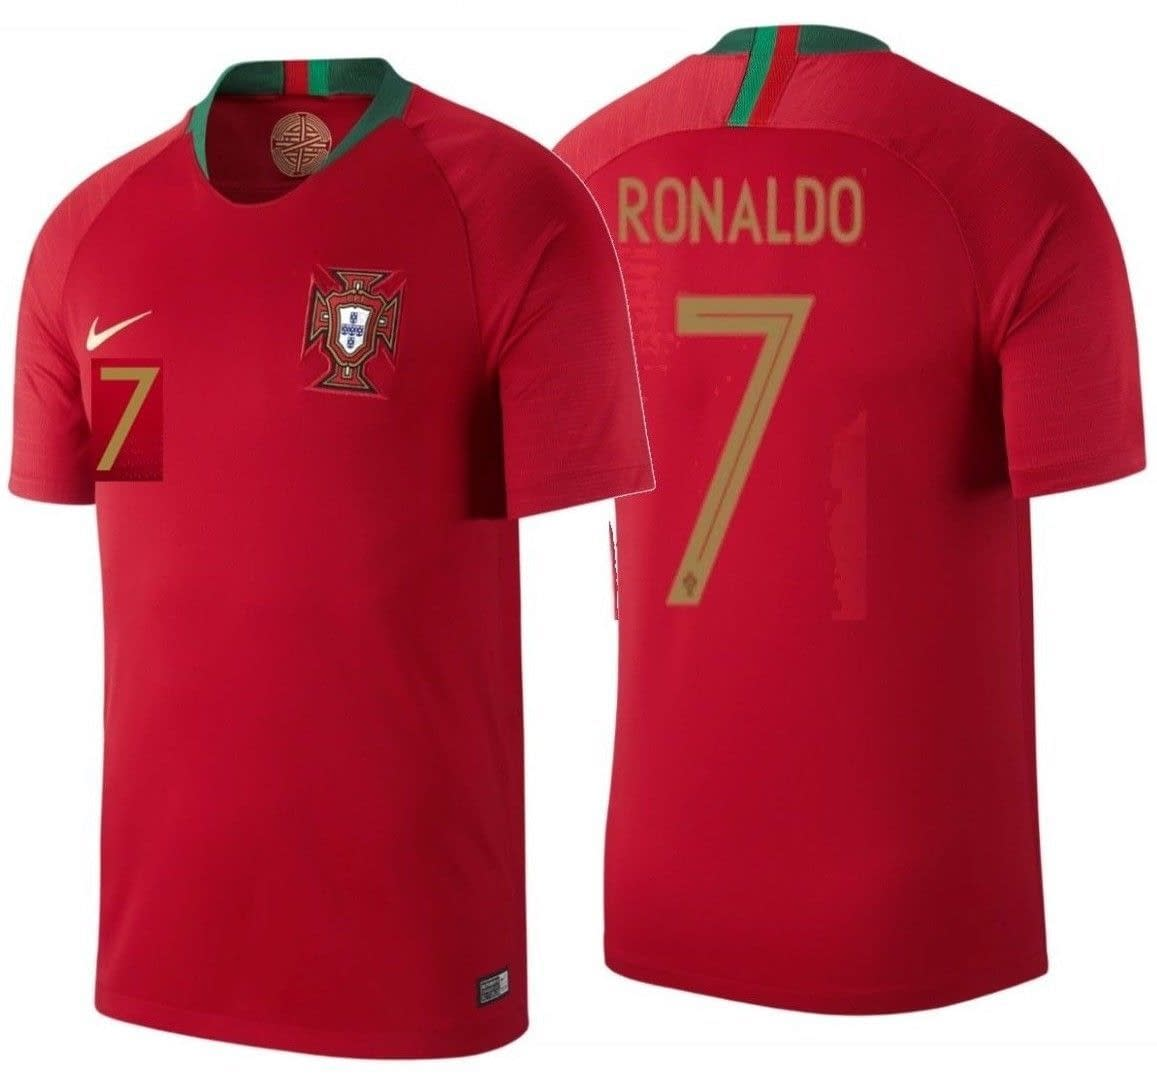 outlet store 83c40 80b97 Portugal Soccer Jersey For Men, Women, or Youth - Custom Name and Number